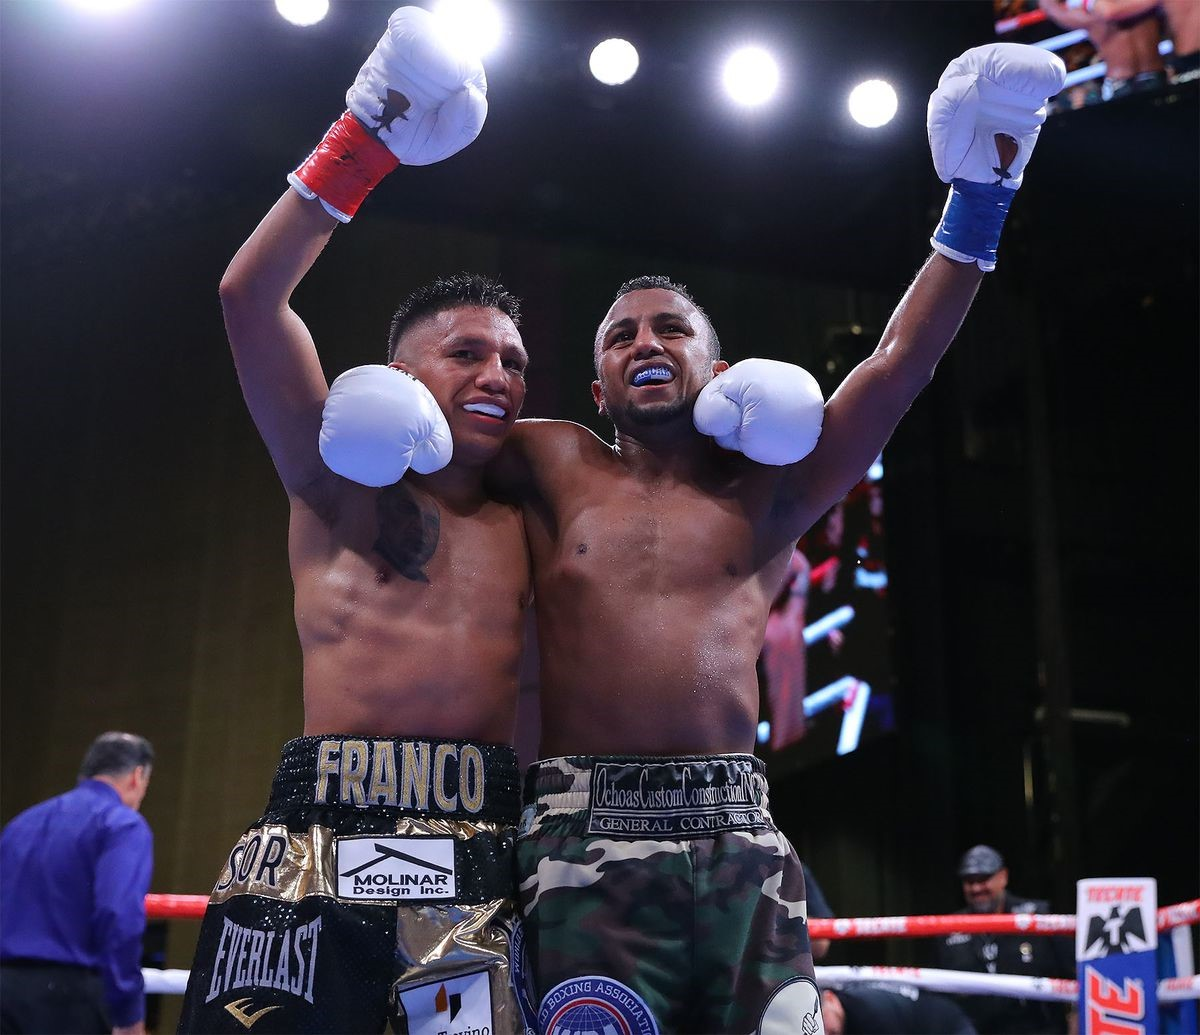 Franco retains his WBA-International belt in a draw against Negrete